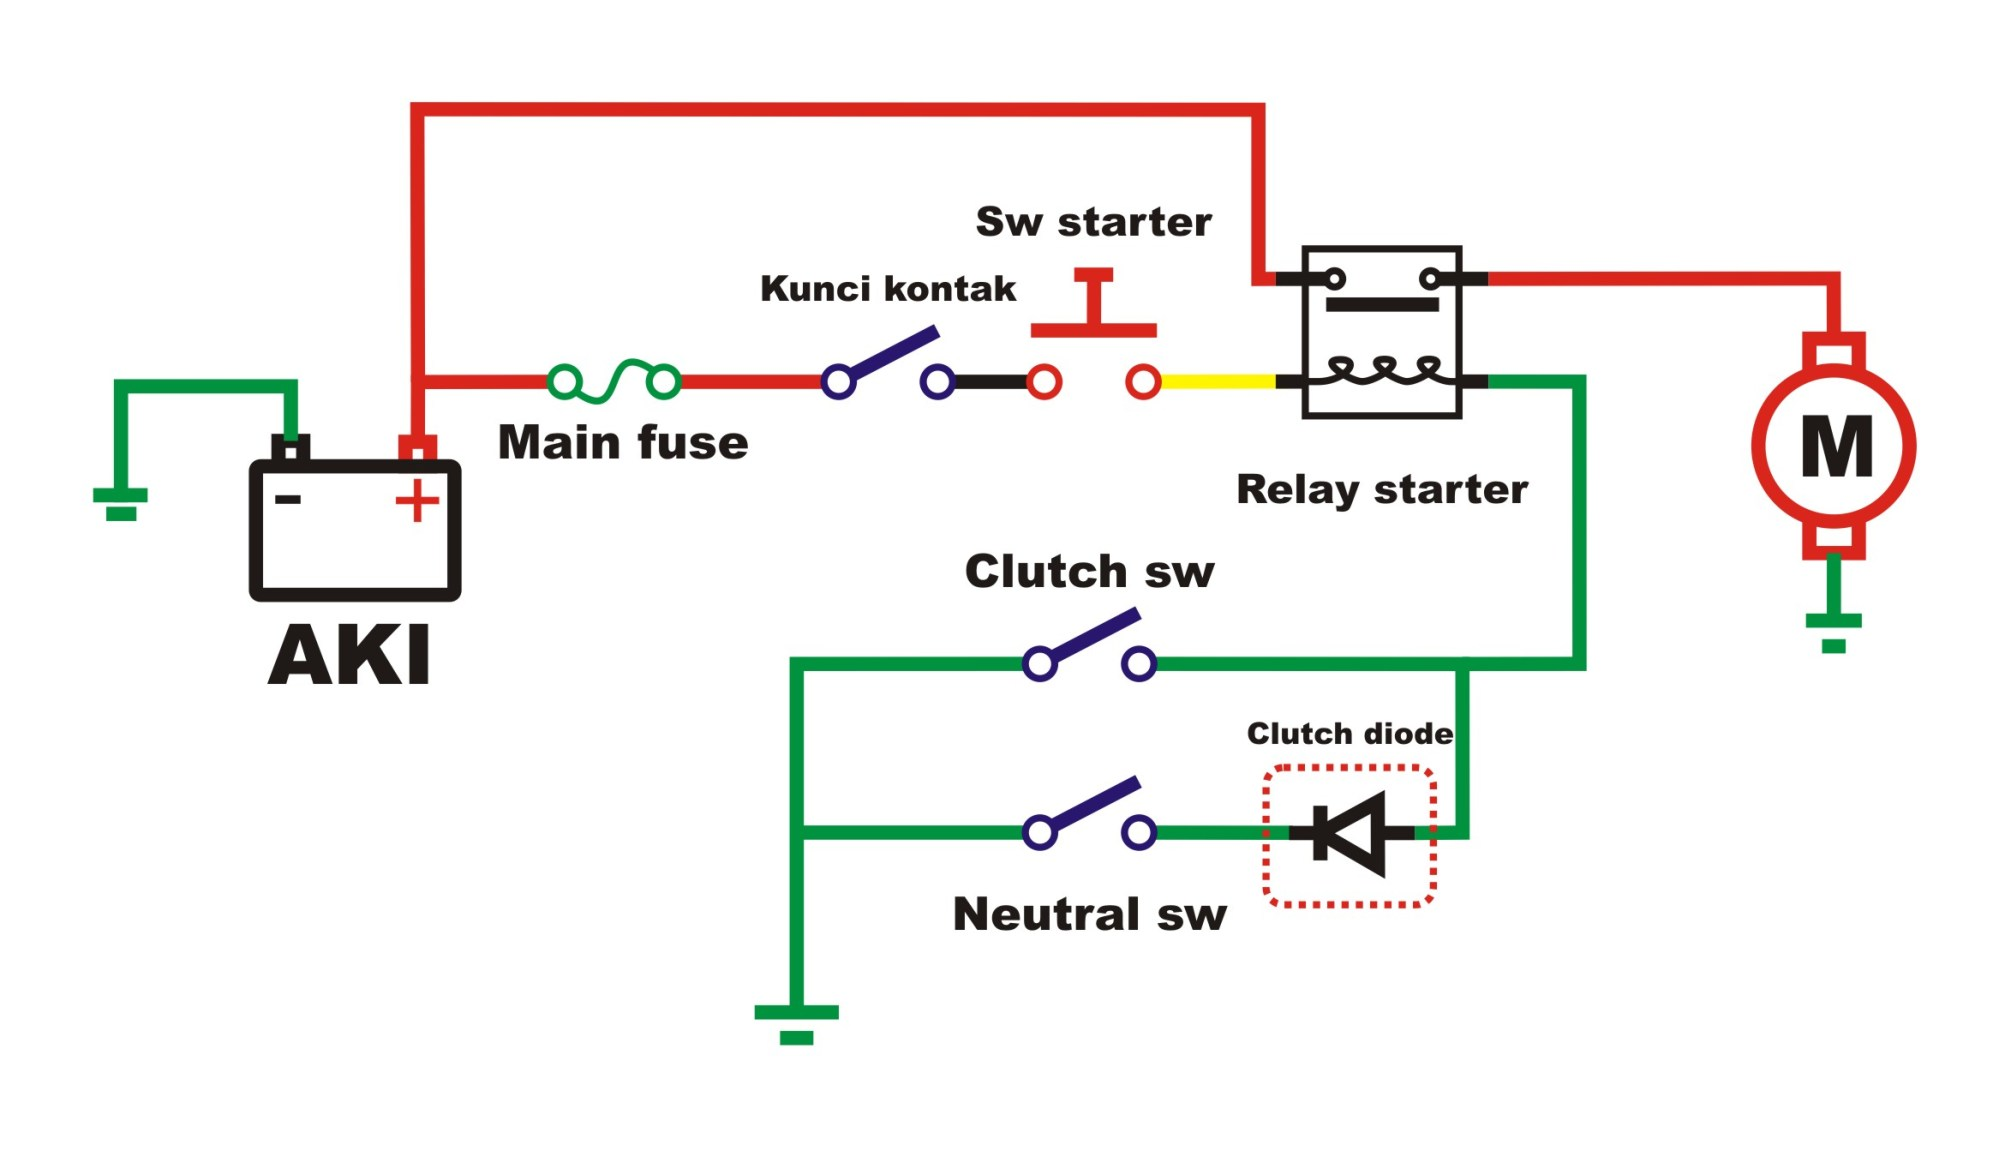 hight resolution of wiring diagram motor honda supra wiring librarybahas kelistrikan wiring harness part2 diy4all koleksi gambar wering diagram